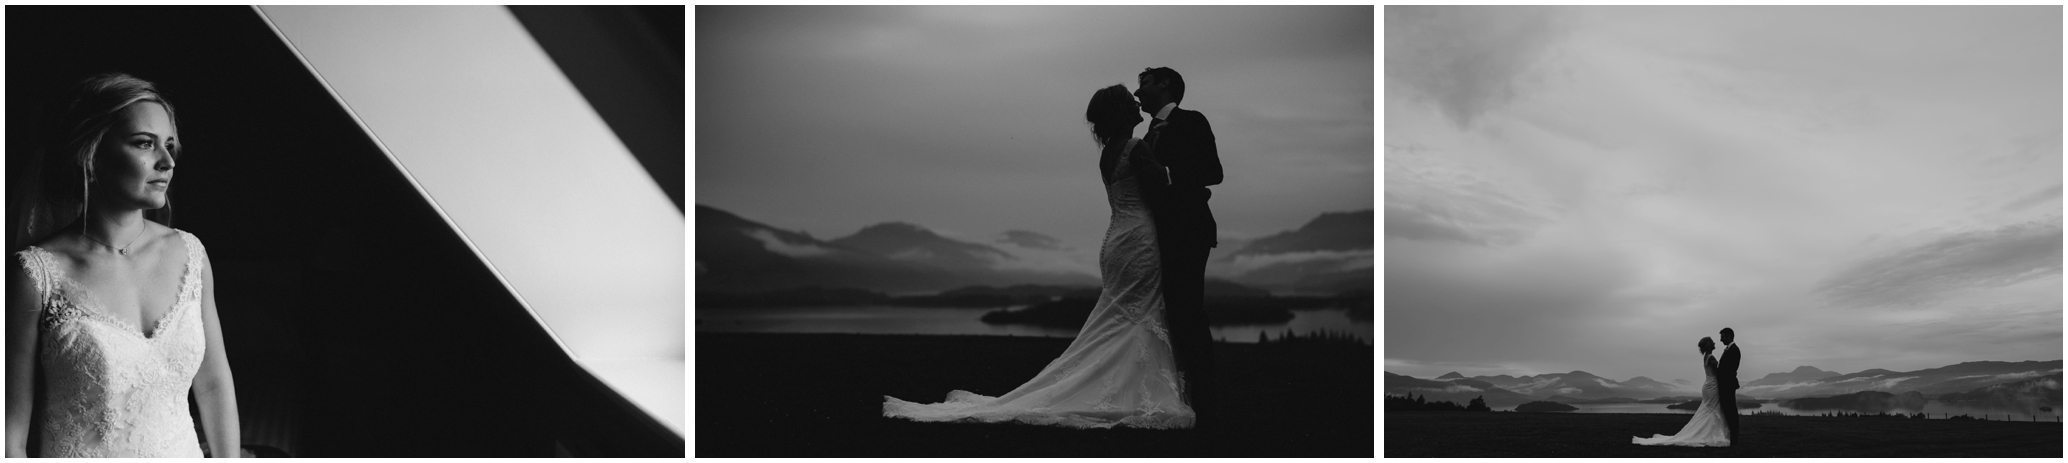 20180602_Ardoch Estate Wedding_004_WEB.jpg